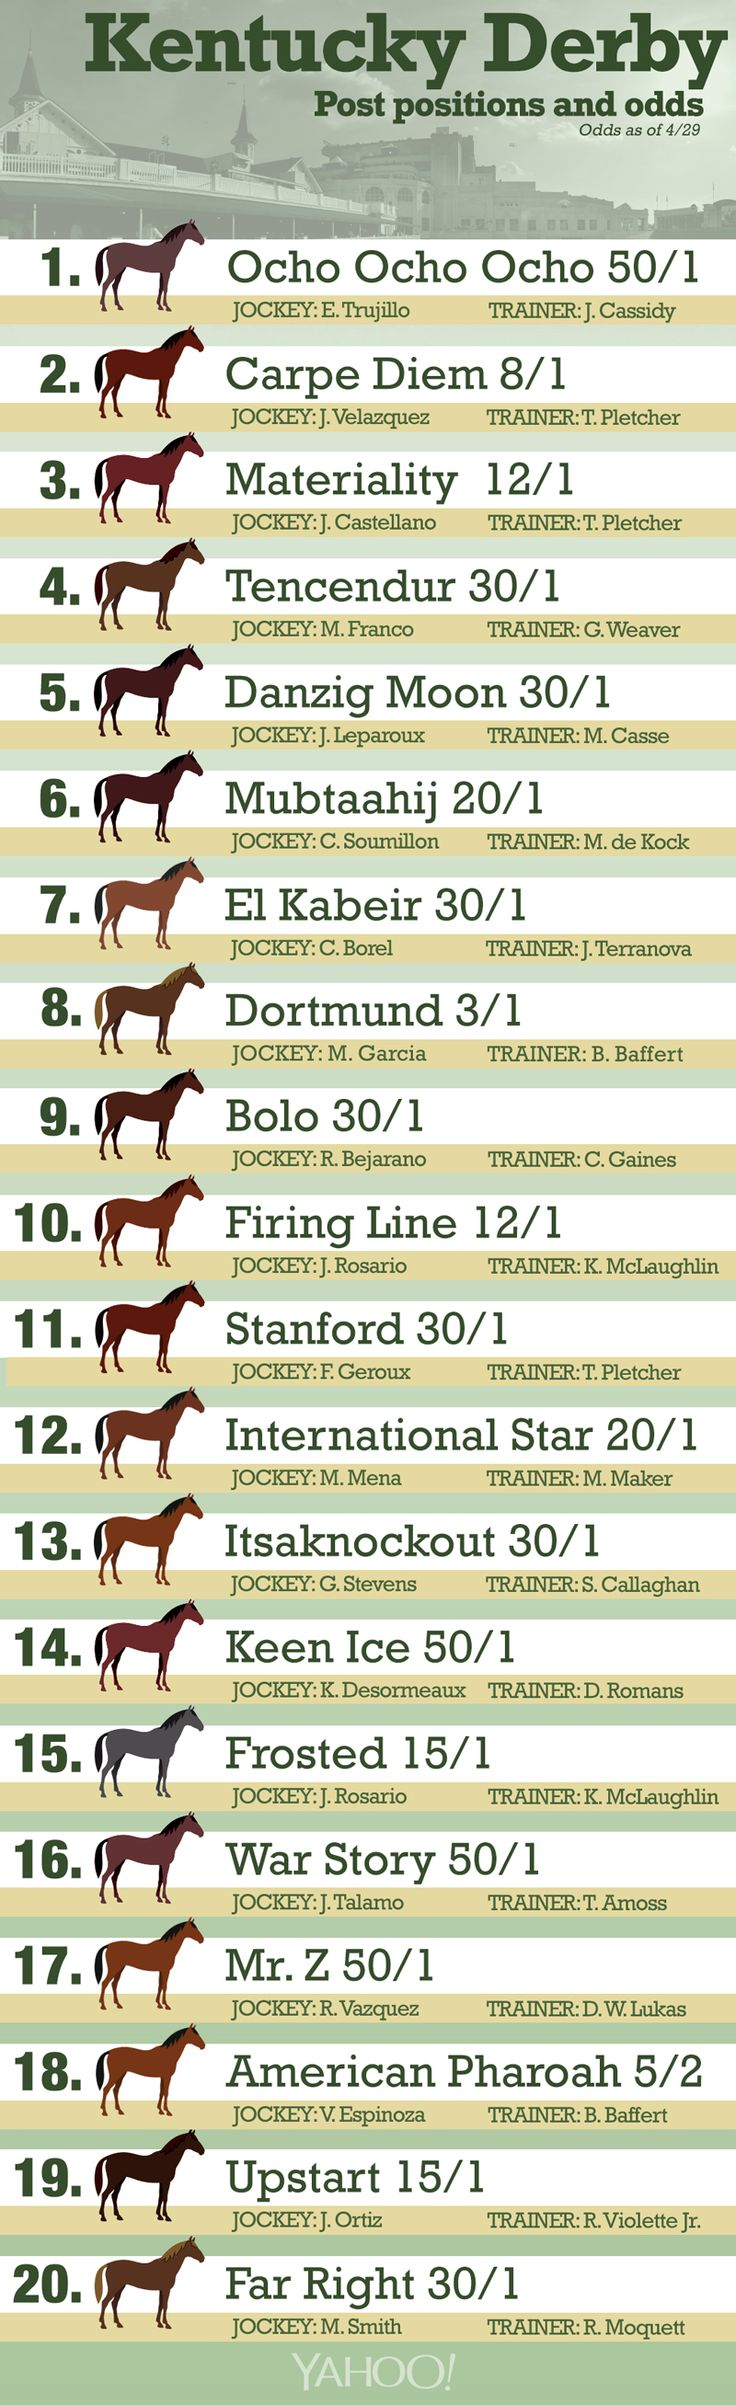 "The #KentuckyDerby post positions are set! Anyone else like the bit about ""Far Right"" getting the far right post position? What are the odds?? (20-1, I guess!)"